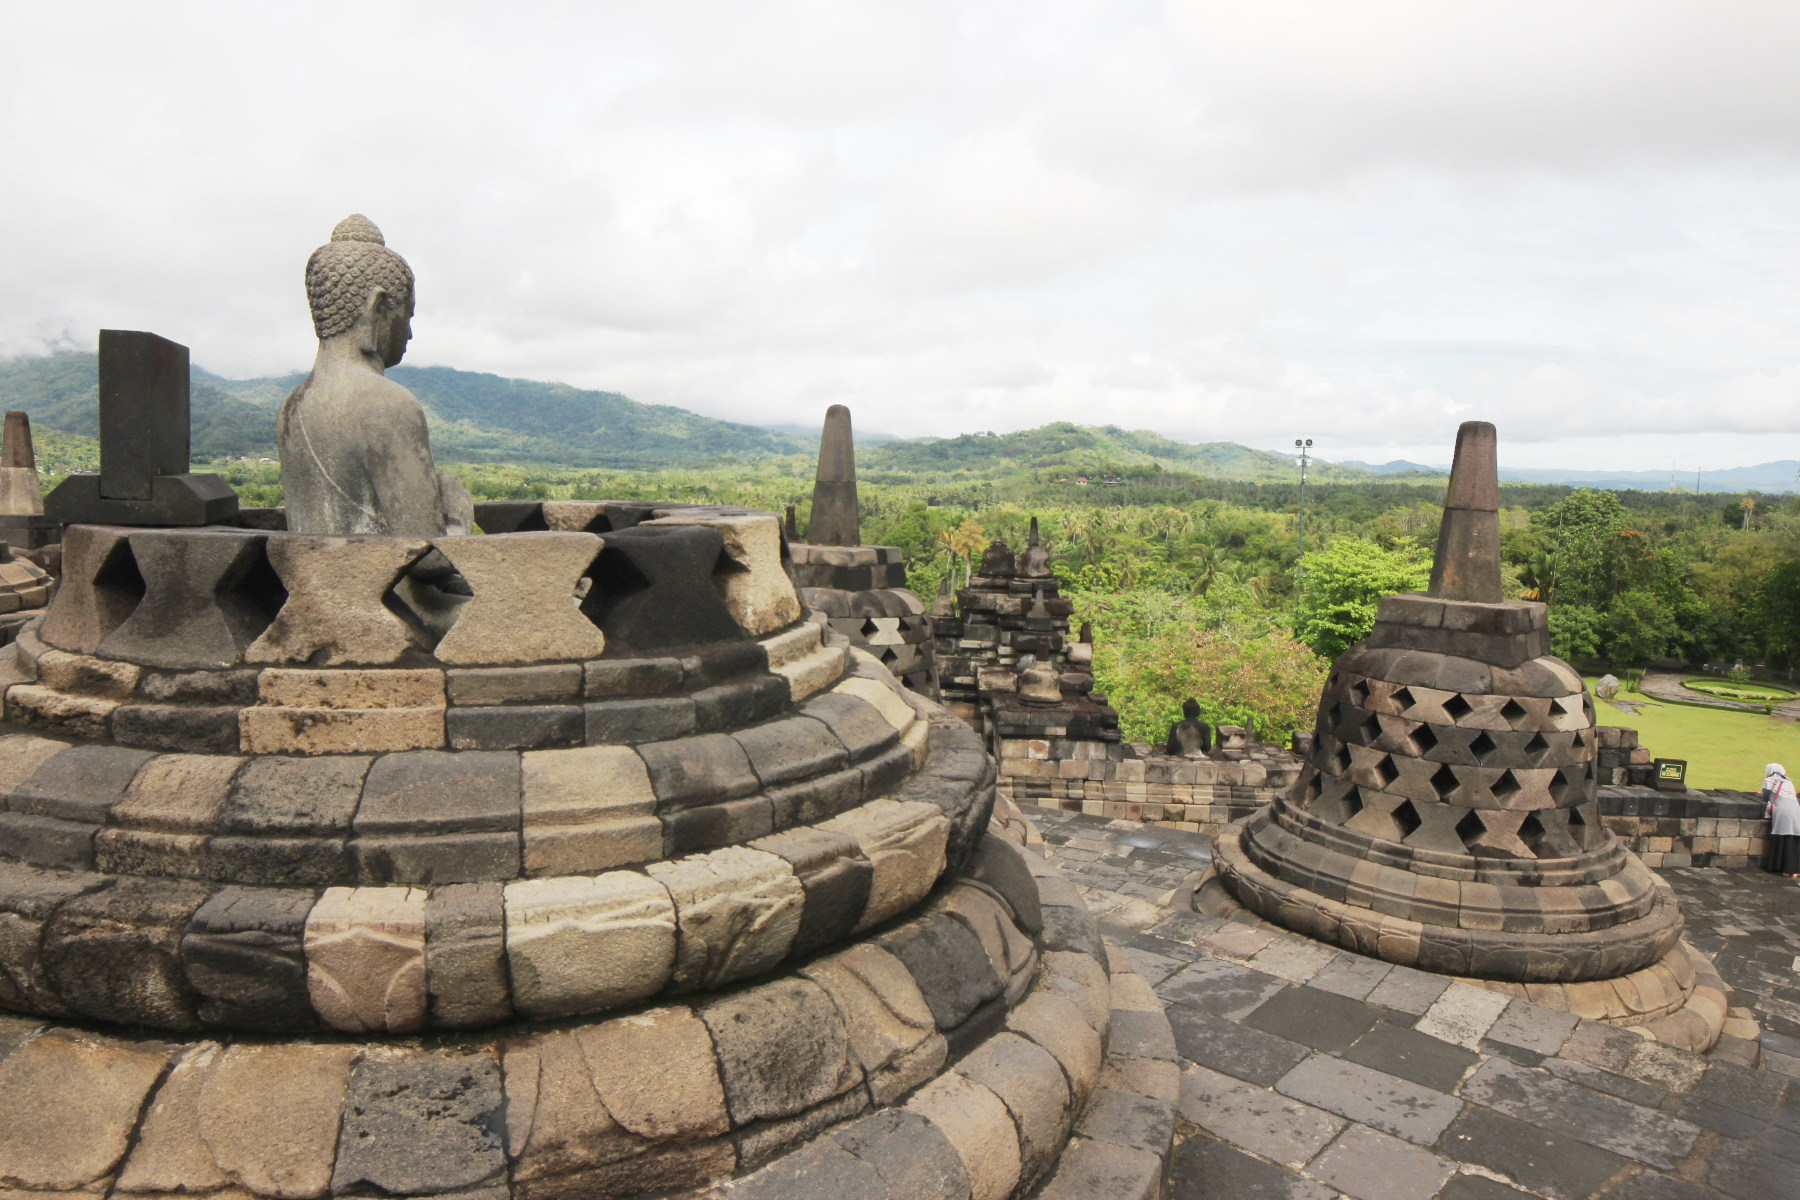 Sightseein from the top of Borobudur